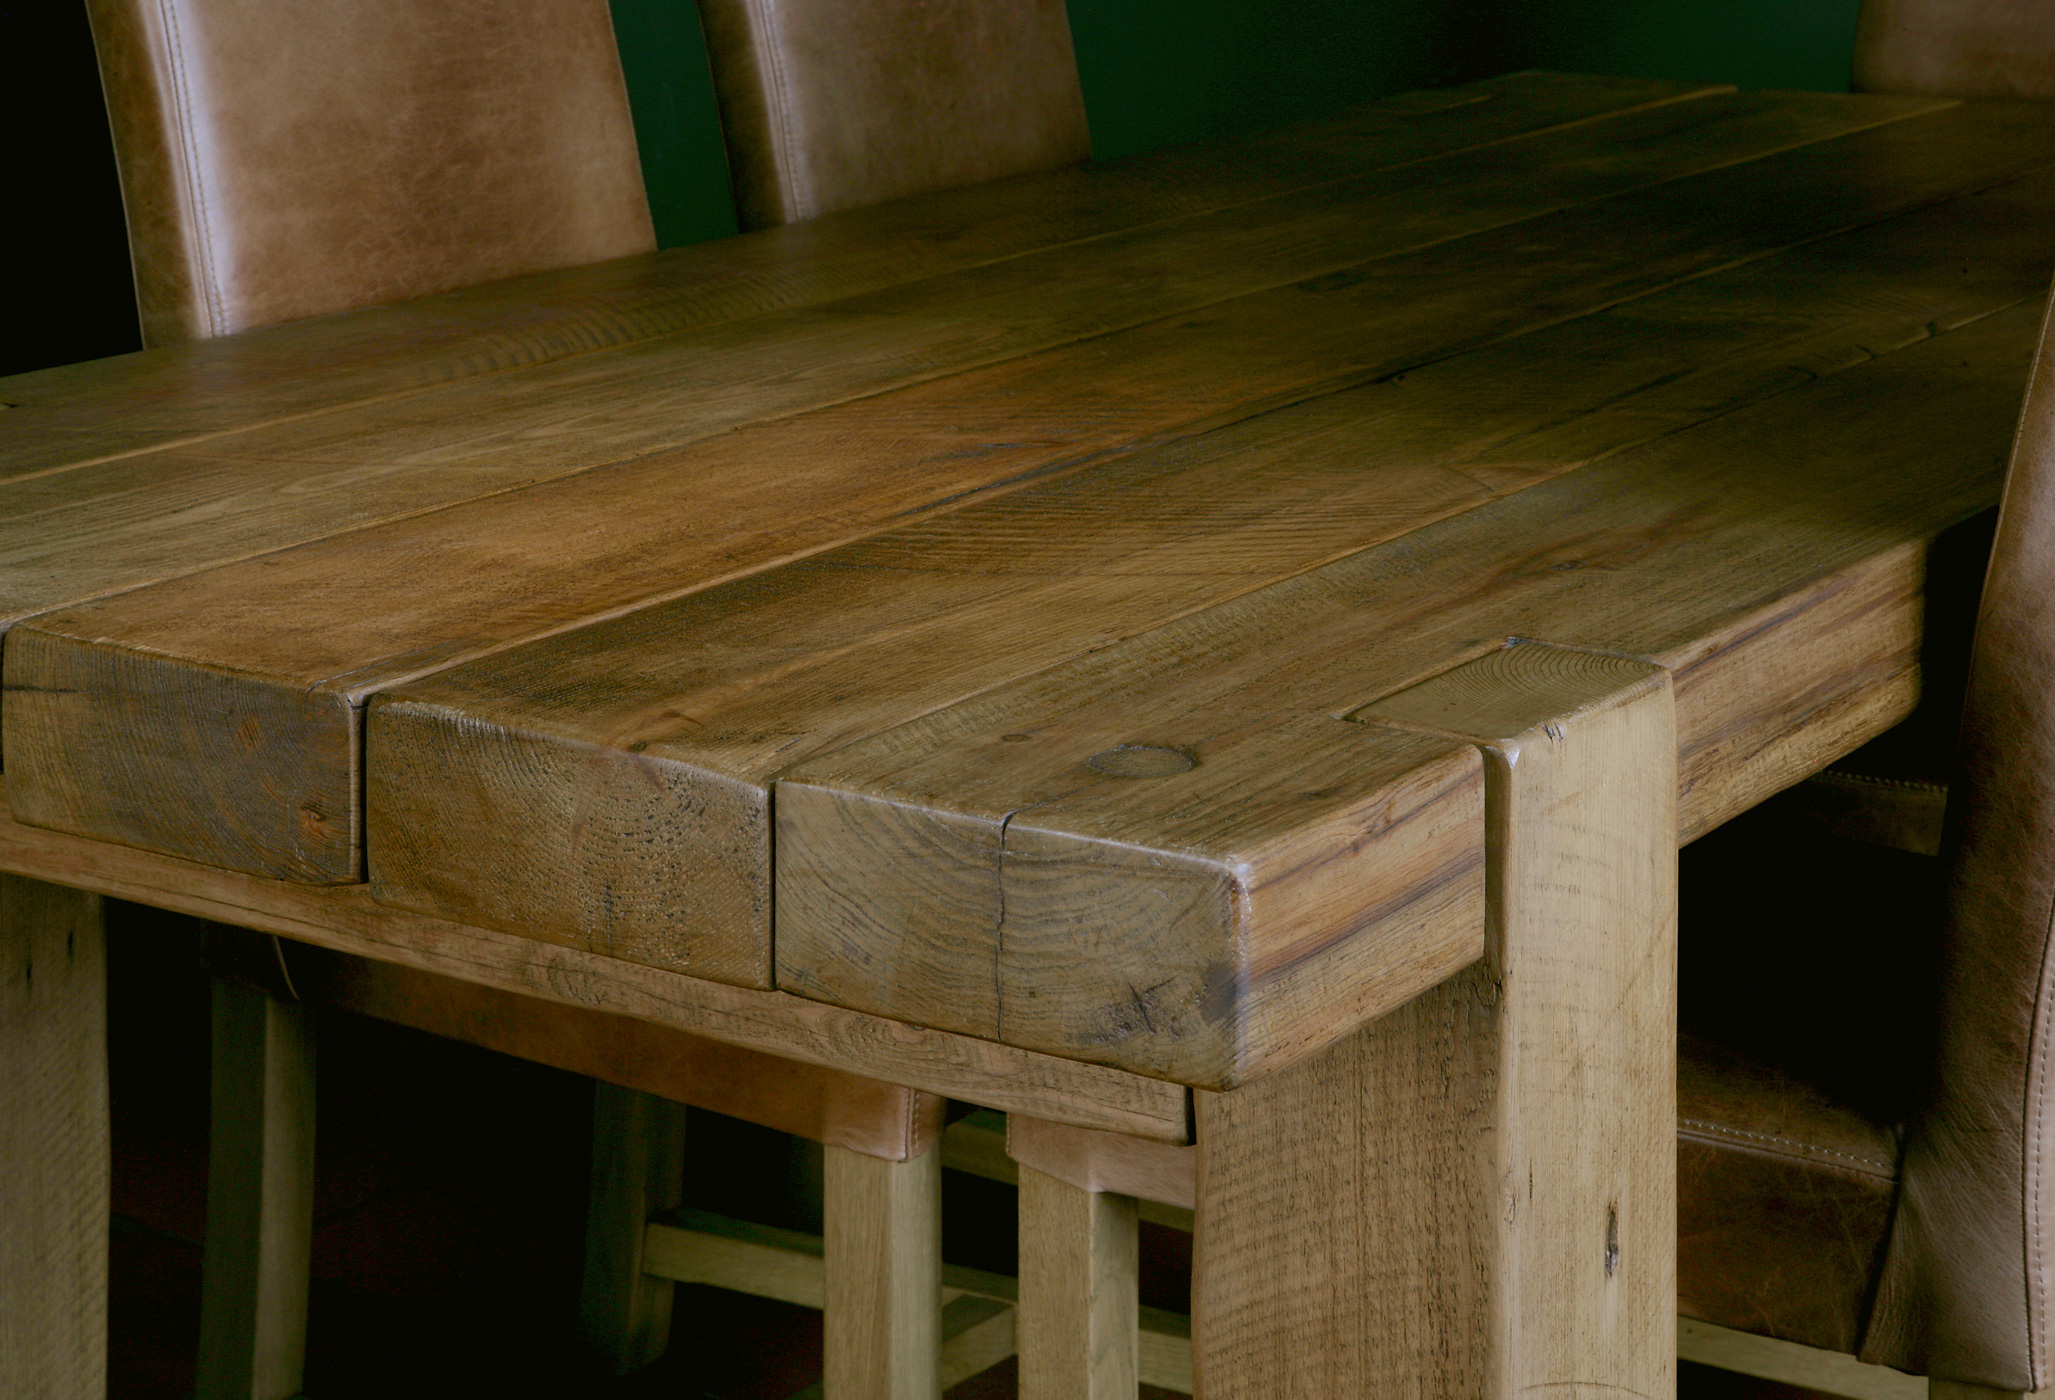 Furniture-Reclaimed-Furniture-Reclaimed-Beam-table